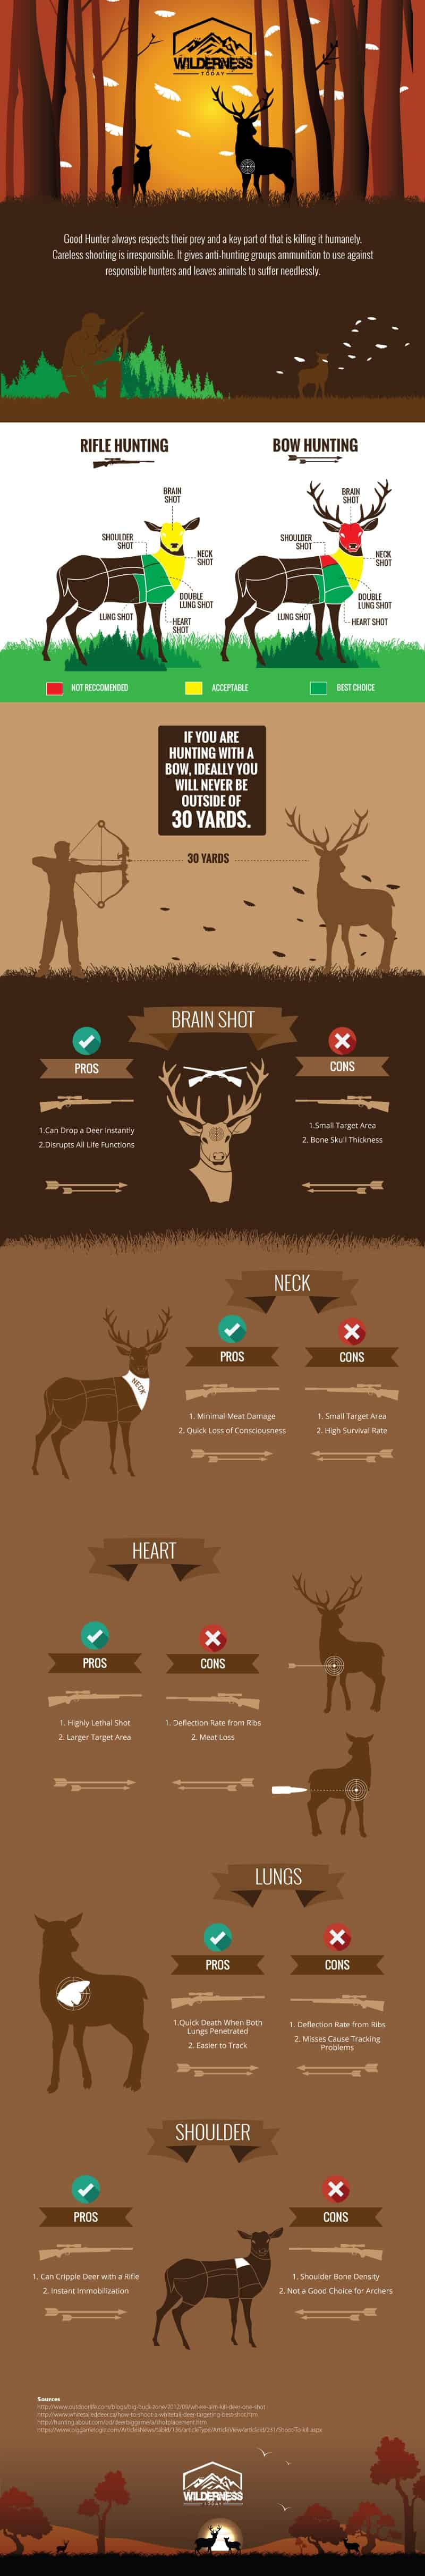 Where to Shoot a Deer - Kill Zone Infographic